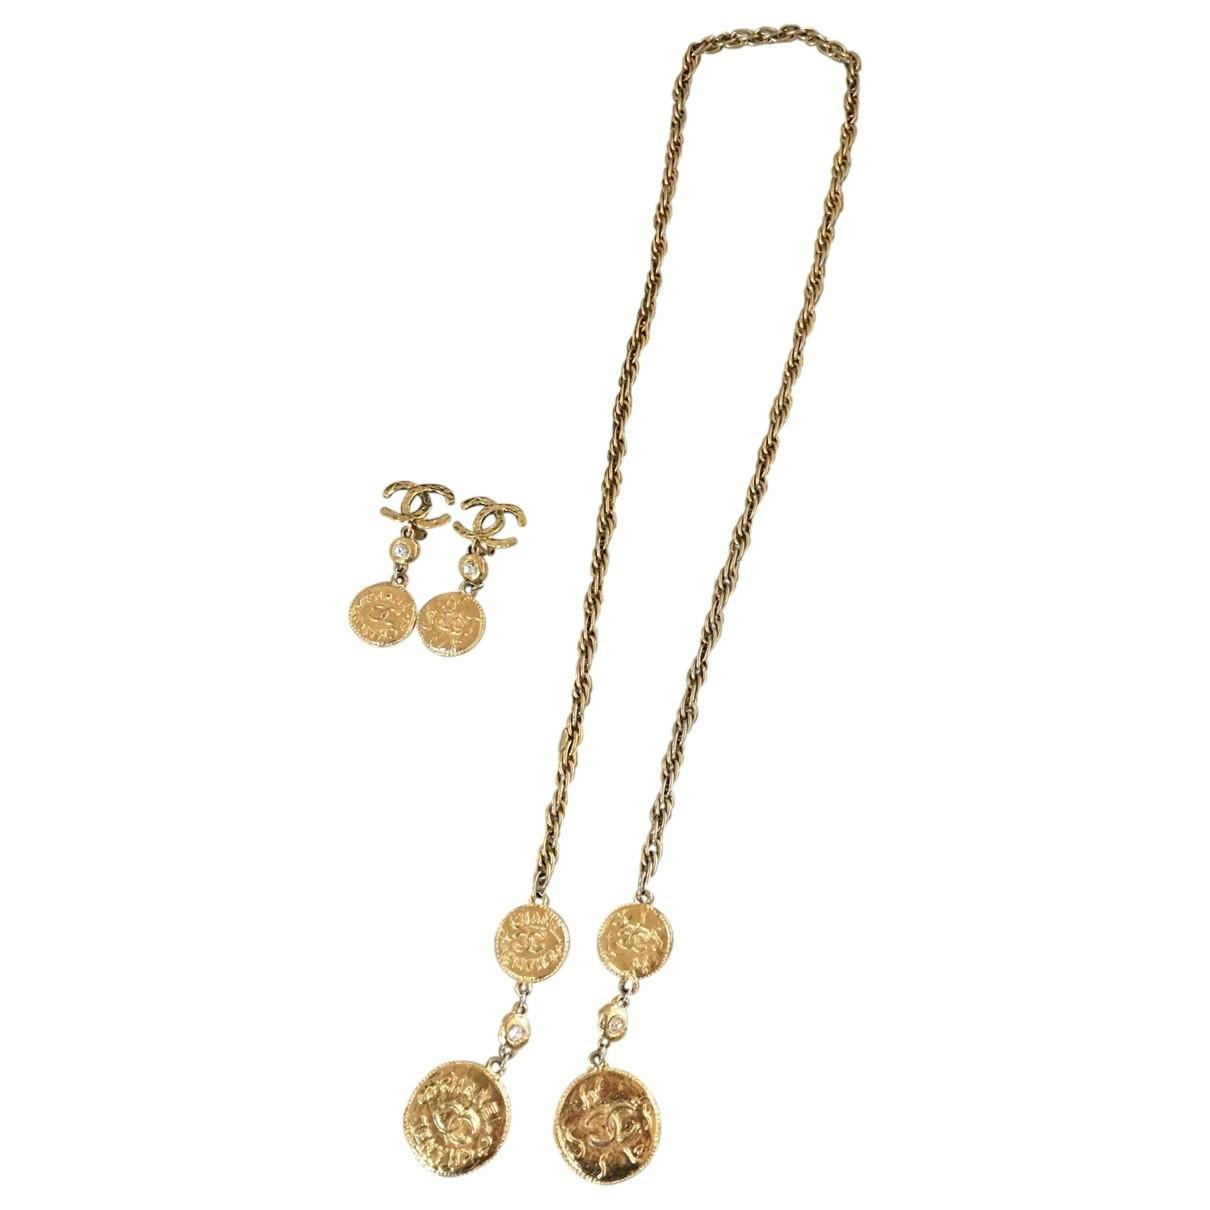 Gold Plain Metal Chanel Jewellery Set Vestiaire Collective